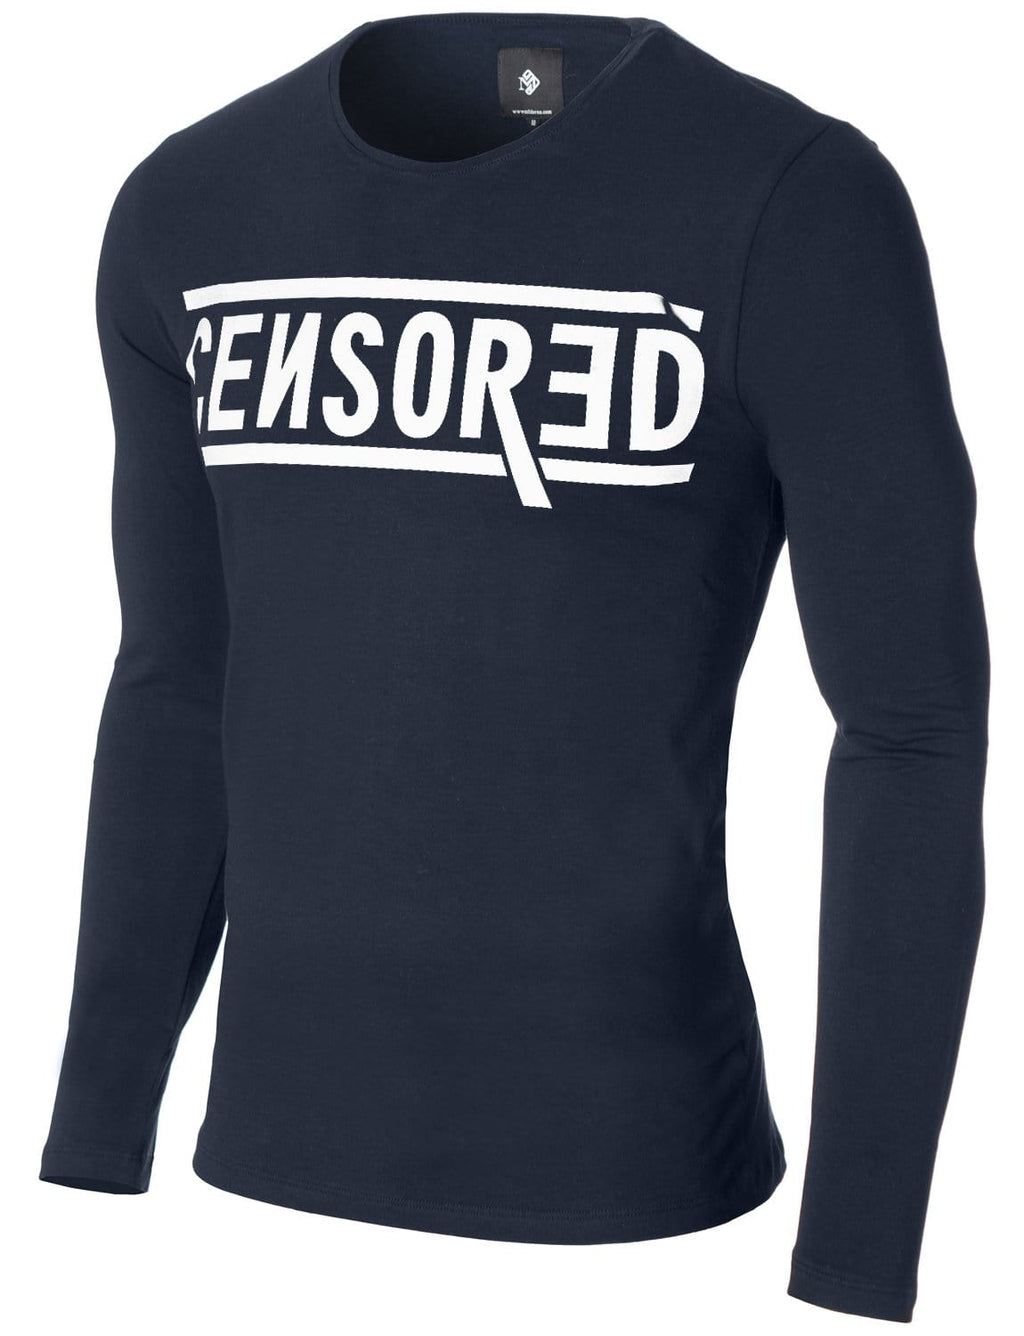 Mens Long Sleeve Censored Print T-shirt Navy